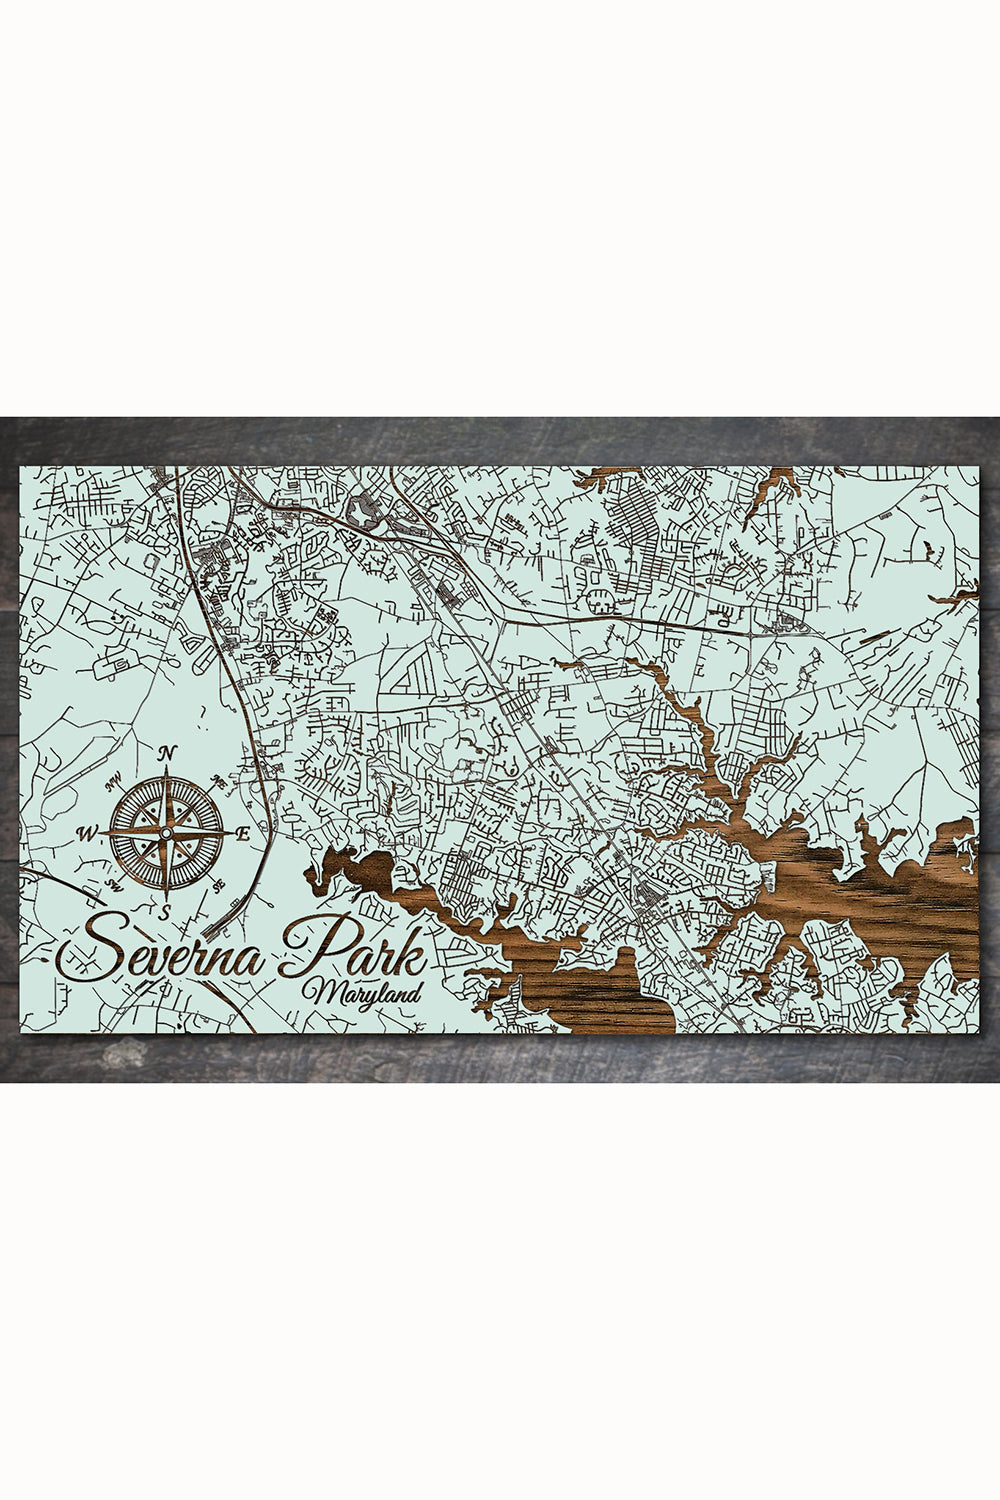 FP Wooden Map - Severna Park, Maryland (Seaglass)